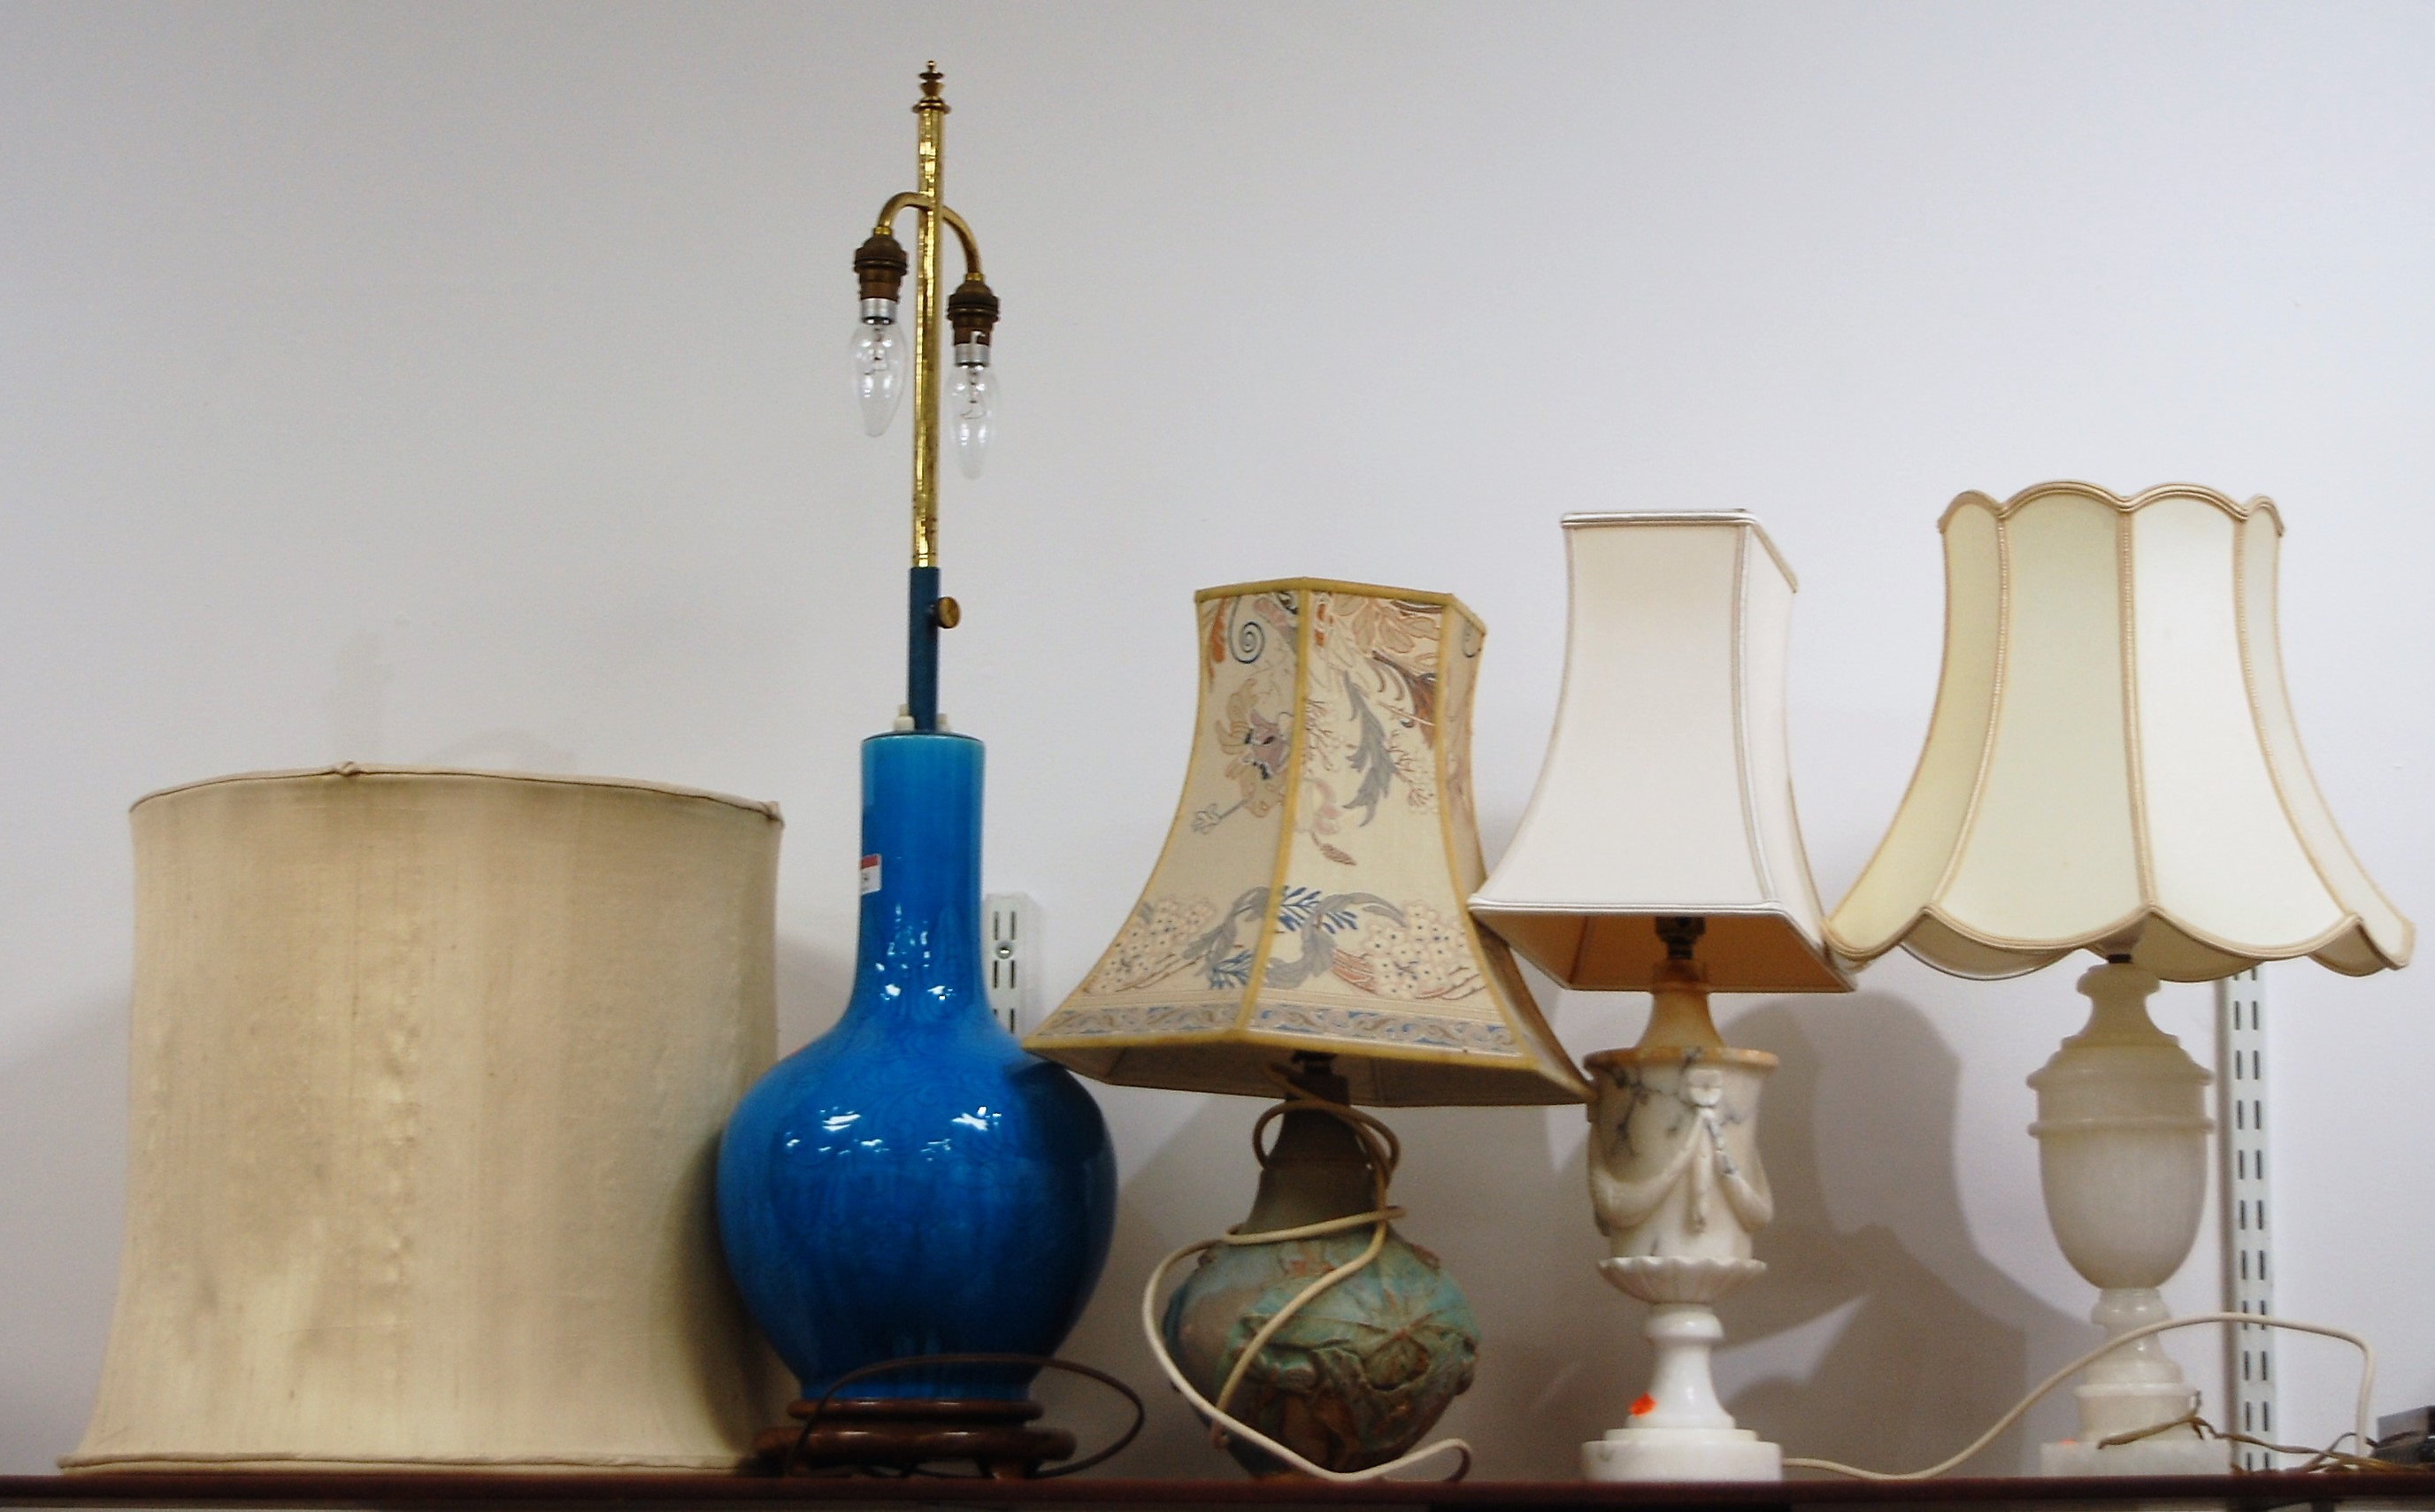 Lot 34 - In the manner of Bernard Rooke - a studio pottery lamp base and shade; together with a large